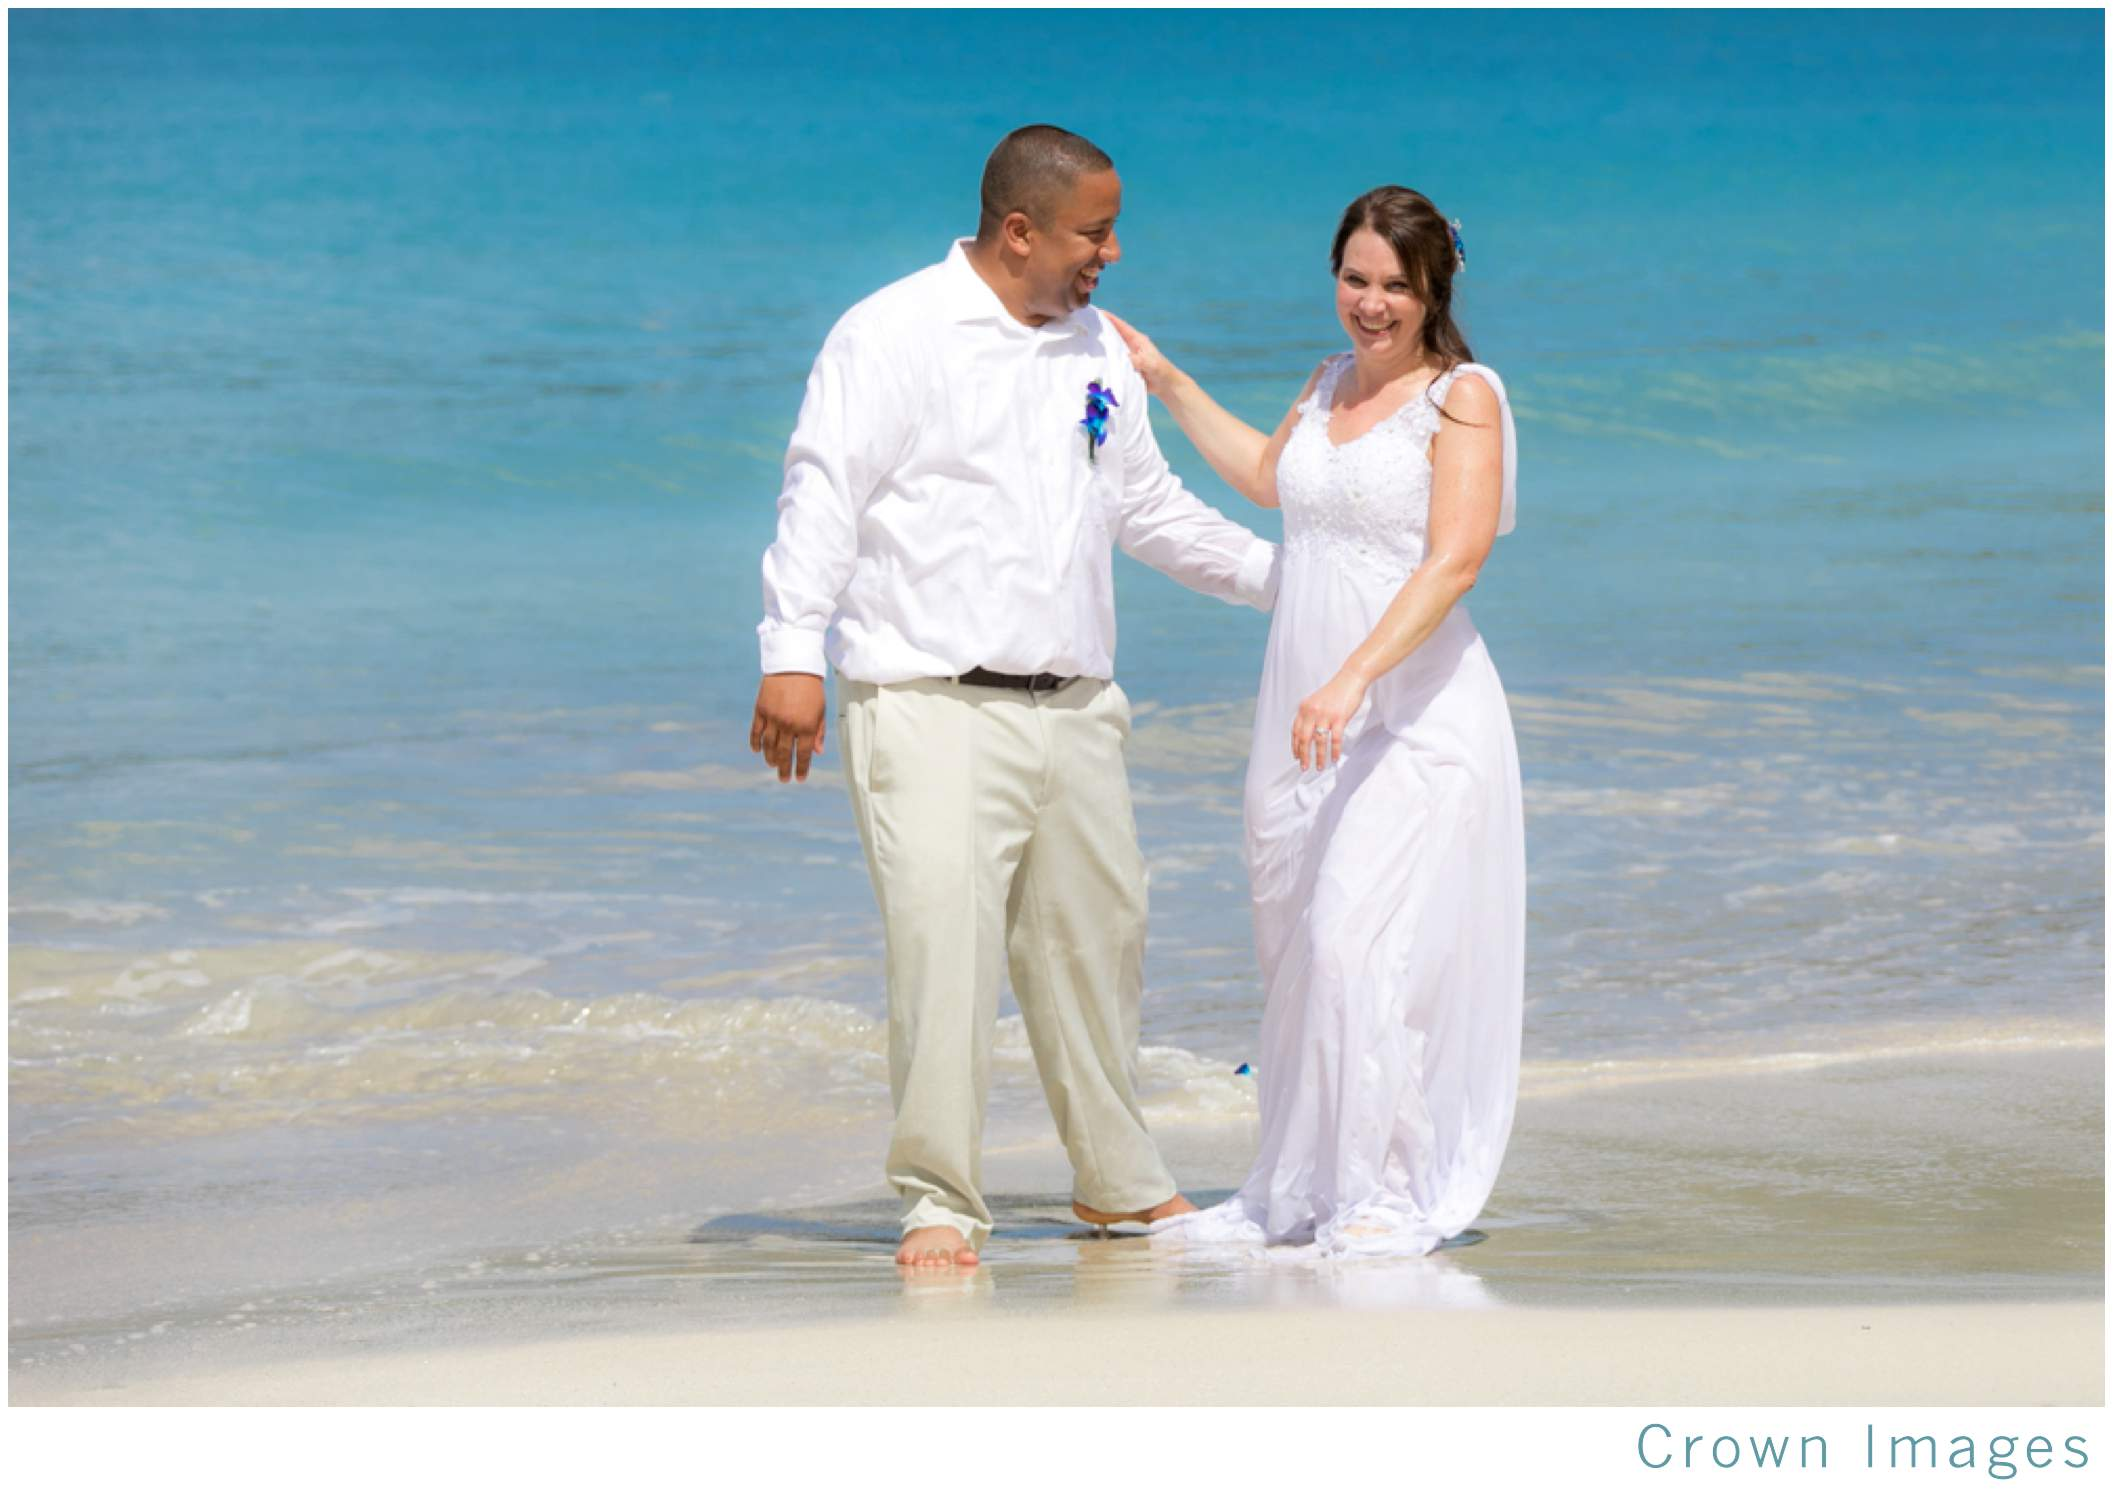 st thomas wedding photographer crown images